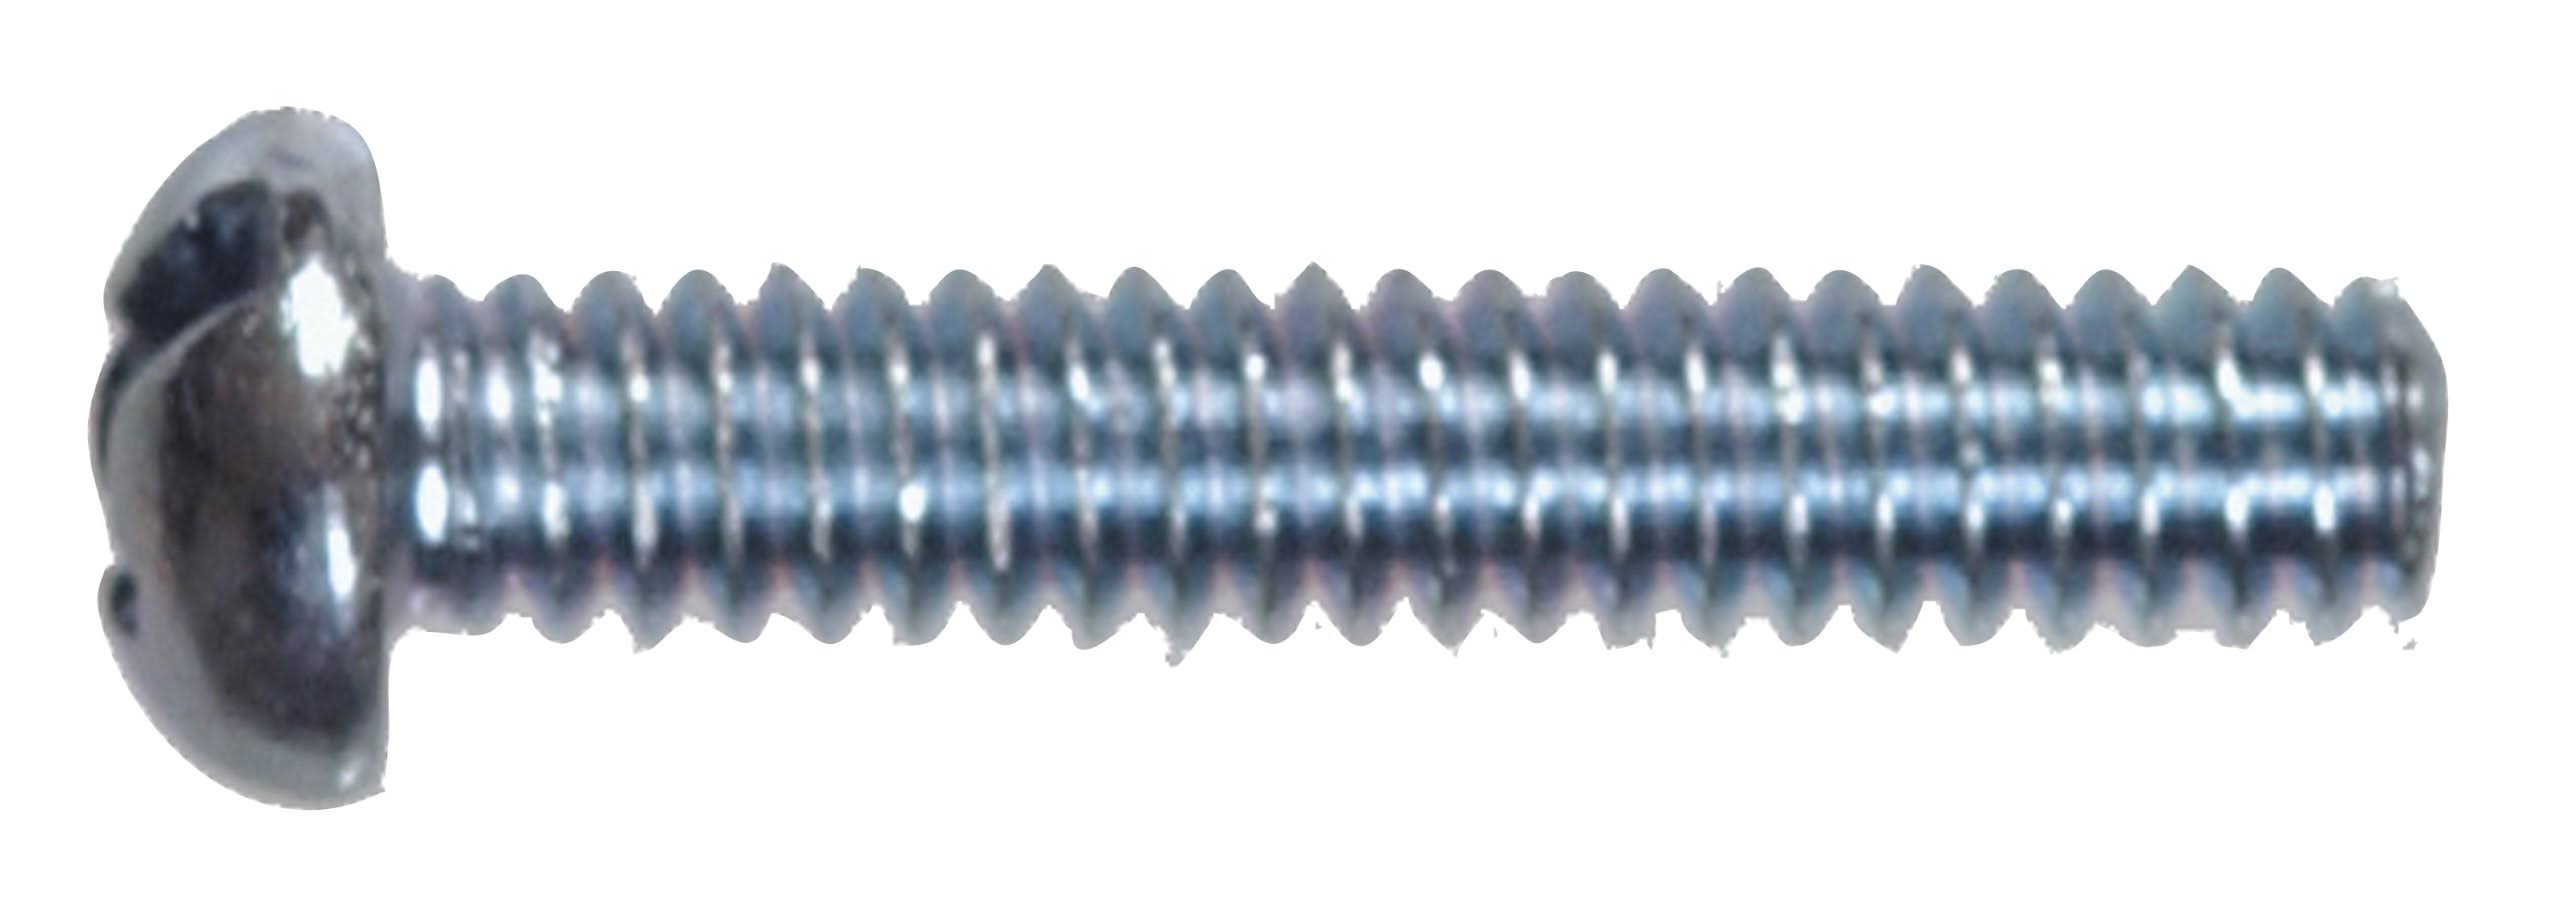 "Hillman Coarse Pan Machine Screws - 8-32"" x 1 1/2"""